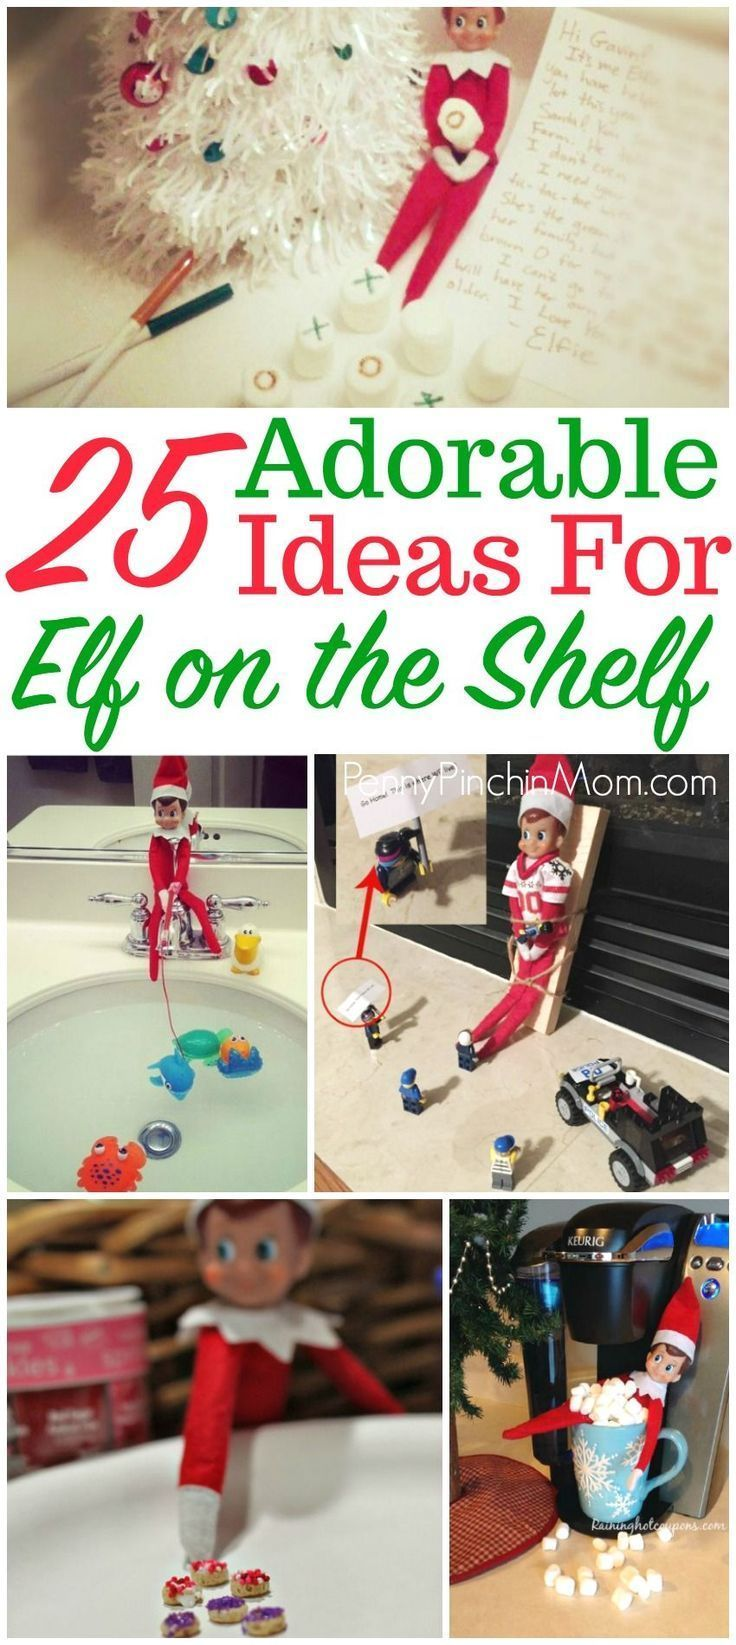 #christmas #Elf #elfontheshelf #Ideas #Kids #Shelf #elfontheshelf #Christmas #Kids #Elf #on #the  Elf on the Shelf ideas fo #elfontheshelfideasforkids #christmas #Elf #elfontheshelf #Ideas #Kids #Shelf #elfontheshelf #Christmas #Kids #Elf #on #the  Elf on the Shelf ideas fo #elfontheshelfideasforkids